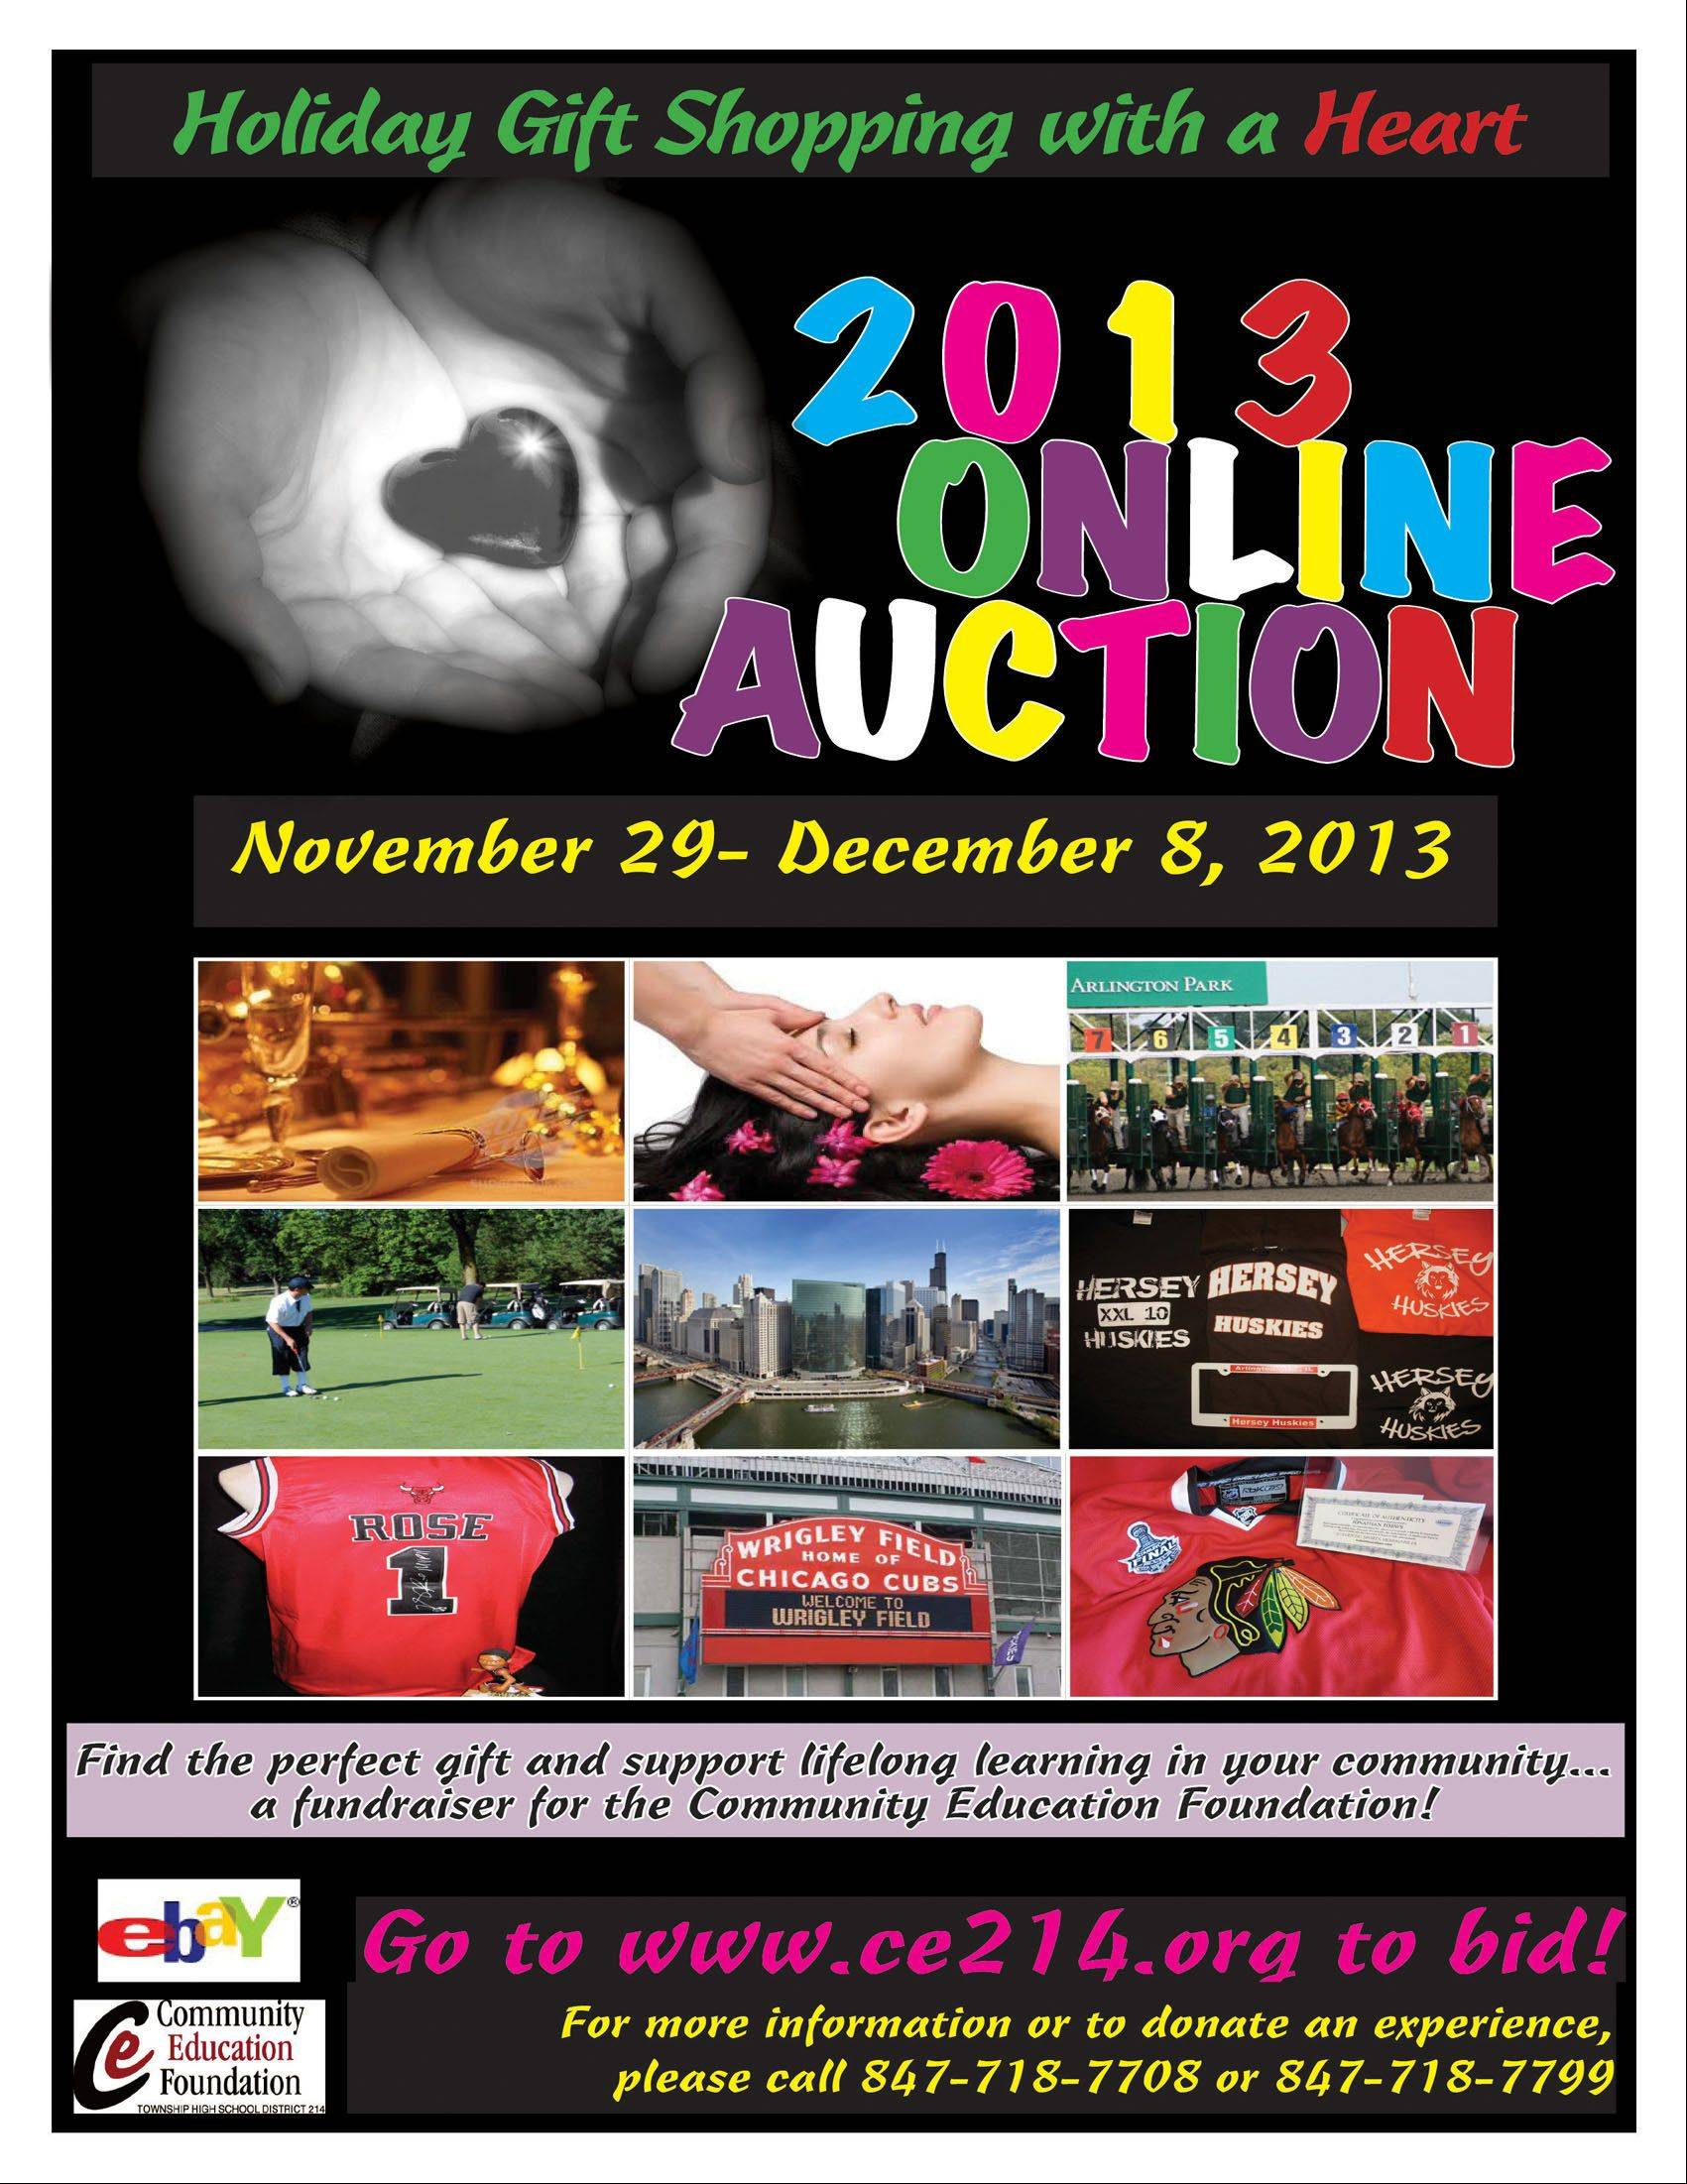 This is the flier promoting the Community Education Foundation's online auction.